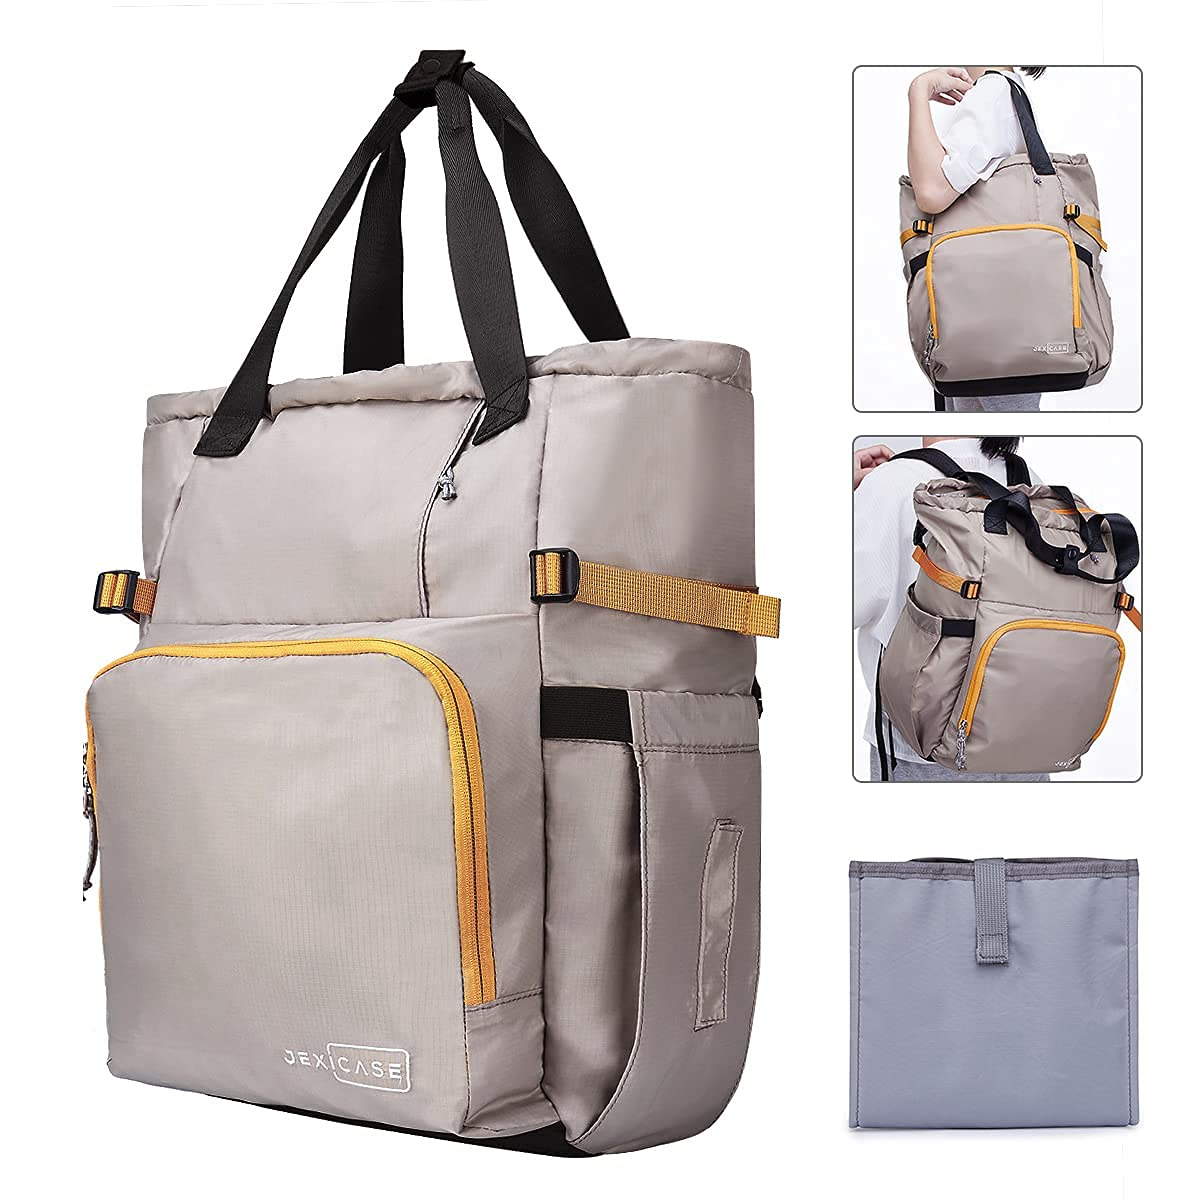 Diaper Bag Backpack, Large Baby Bag, Multi-Functional Travel Back Pack, Waterproof Maternity Nappy Bag Changing Bags with Insulated Pockets Stroller Straps